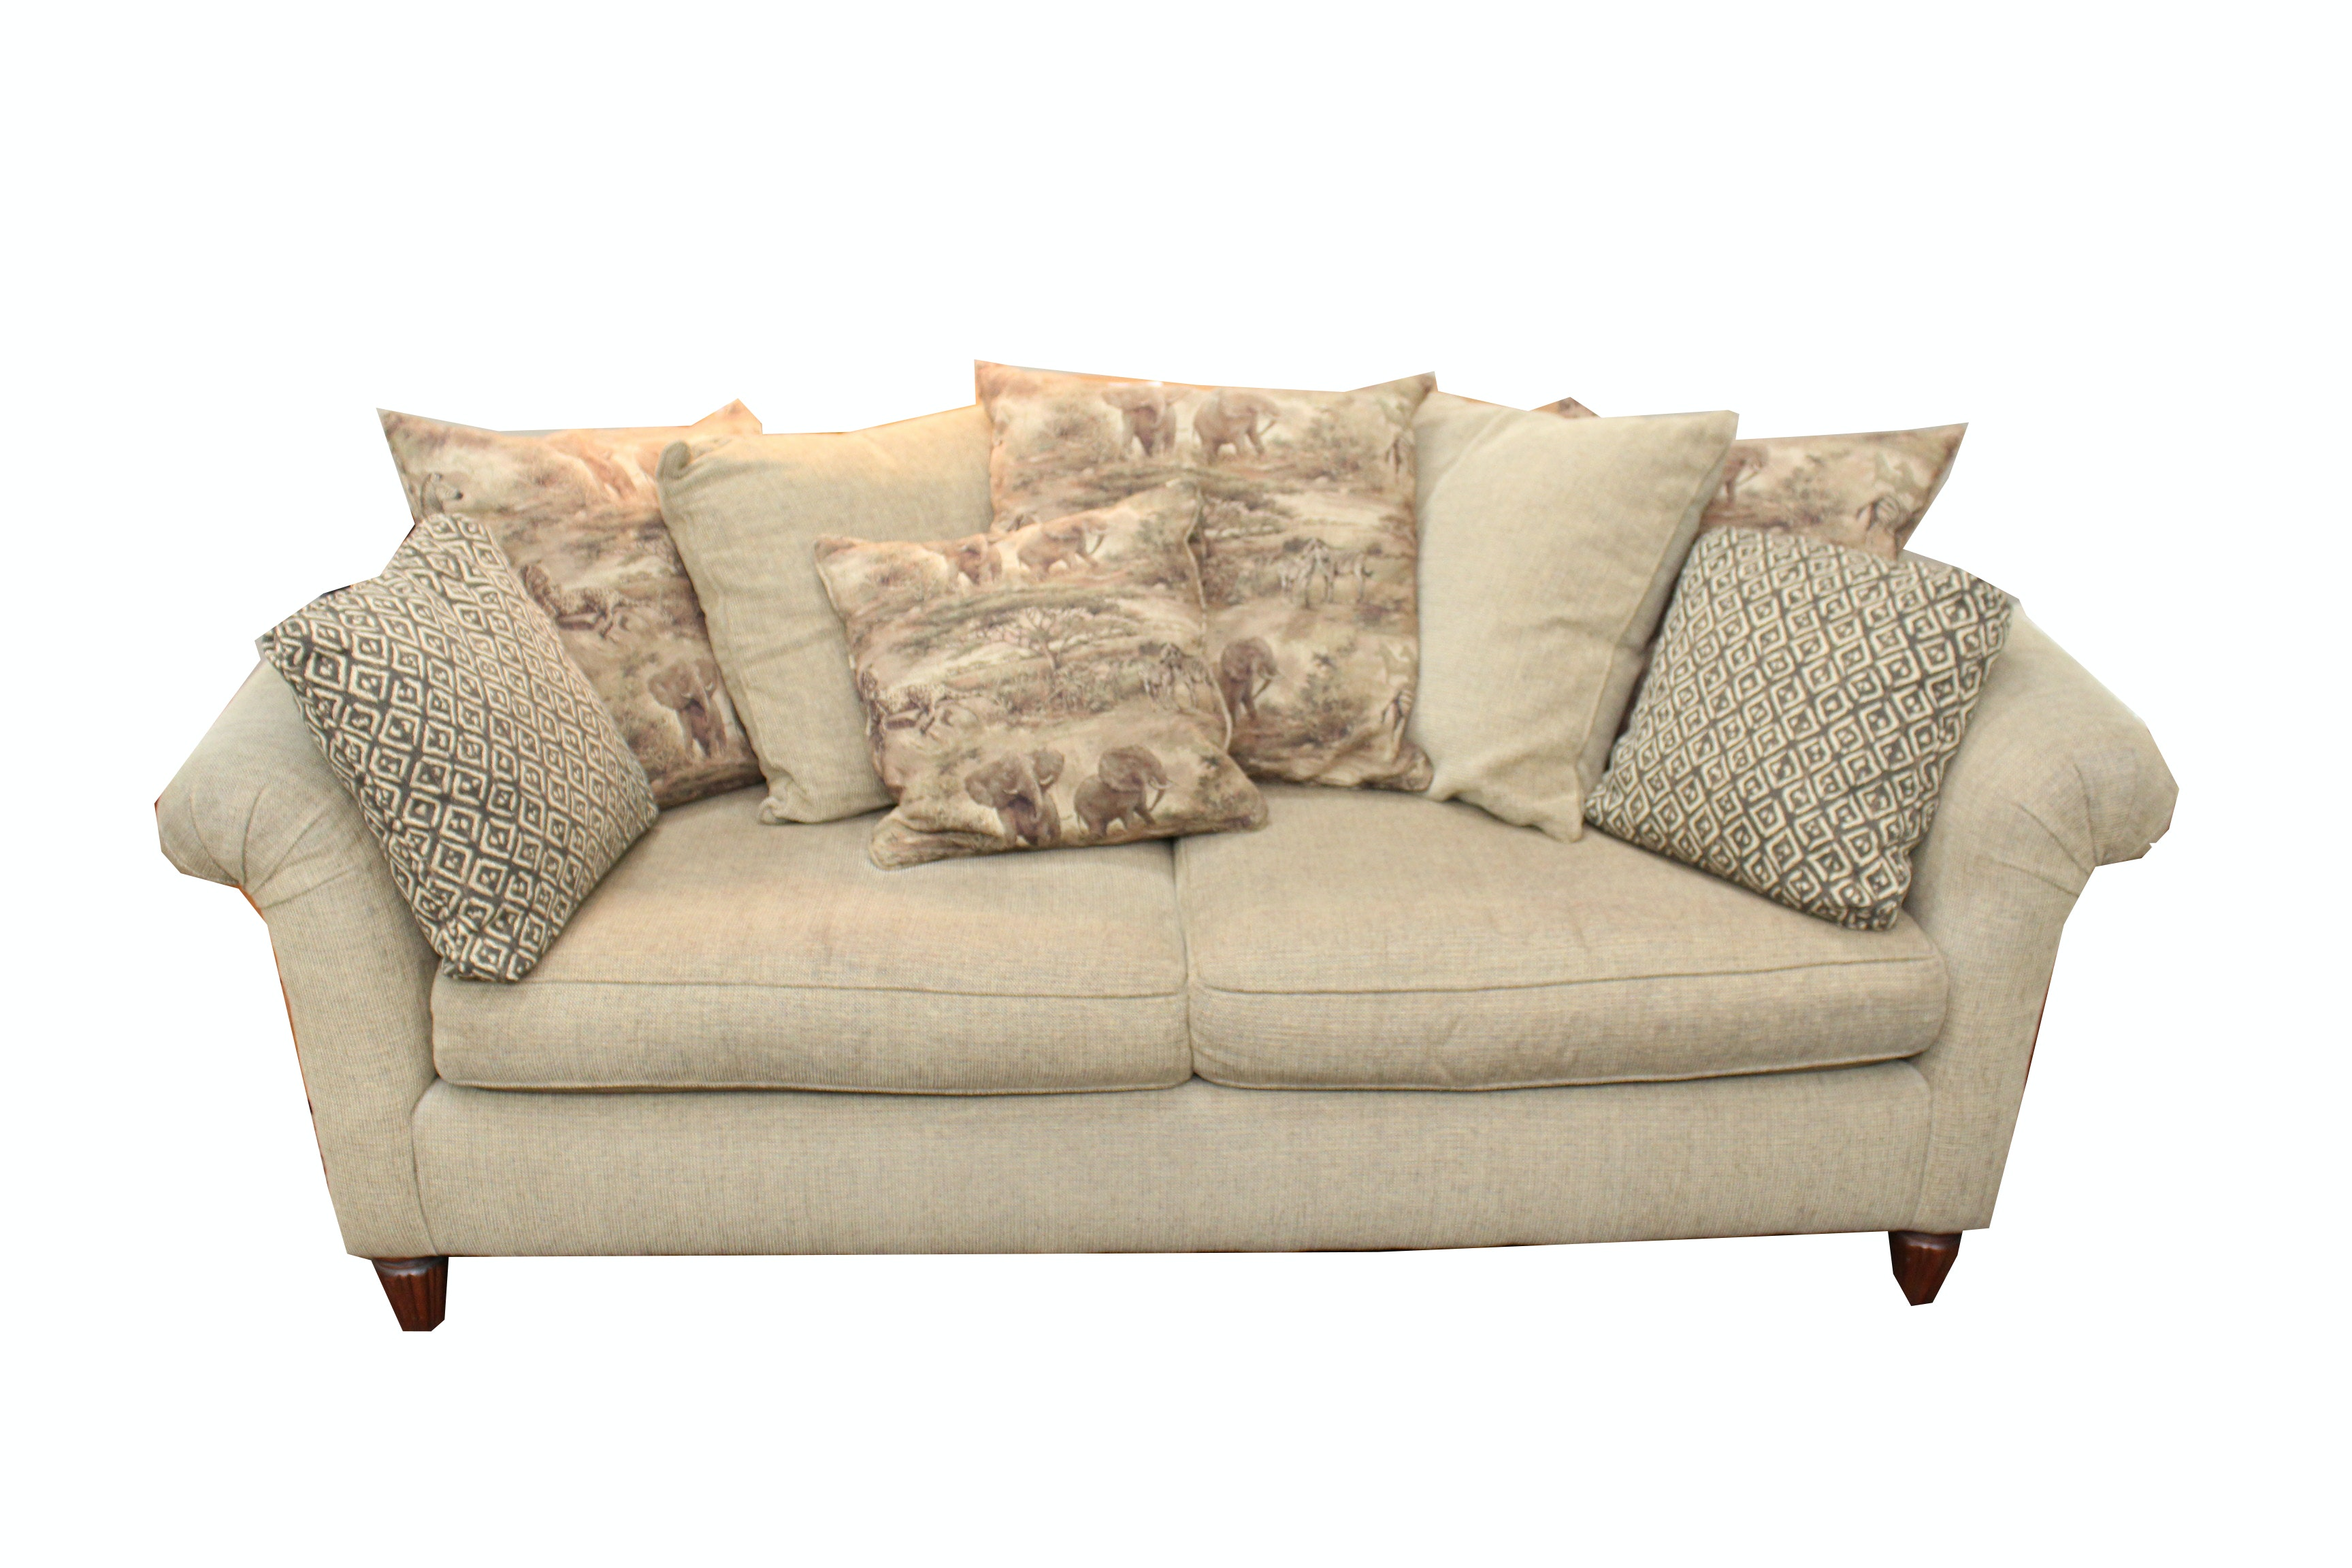 Thomasville Furniture Sofa